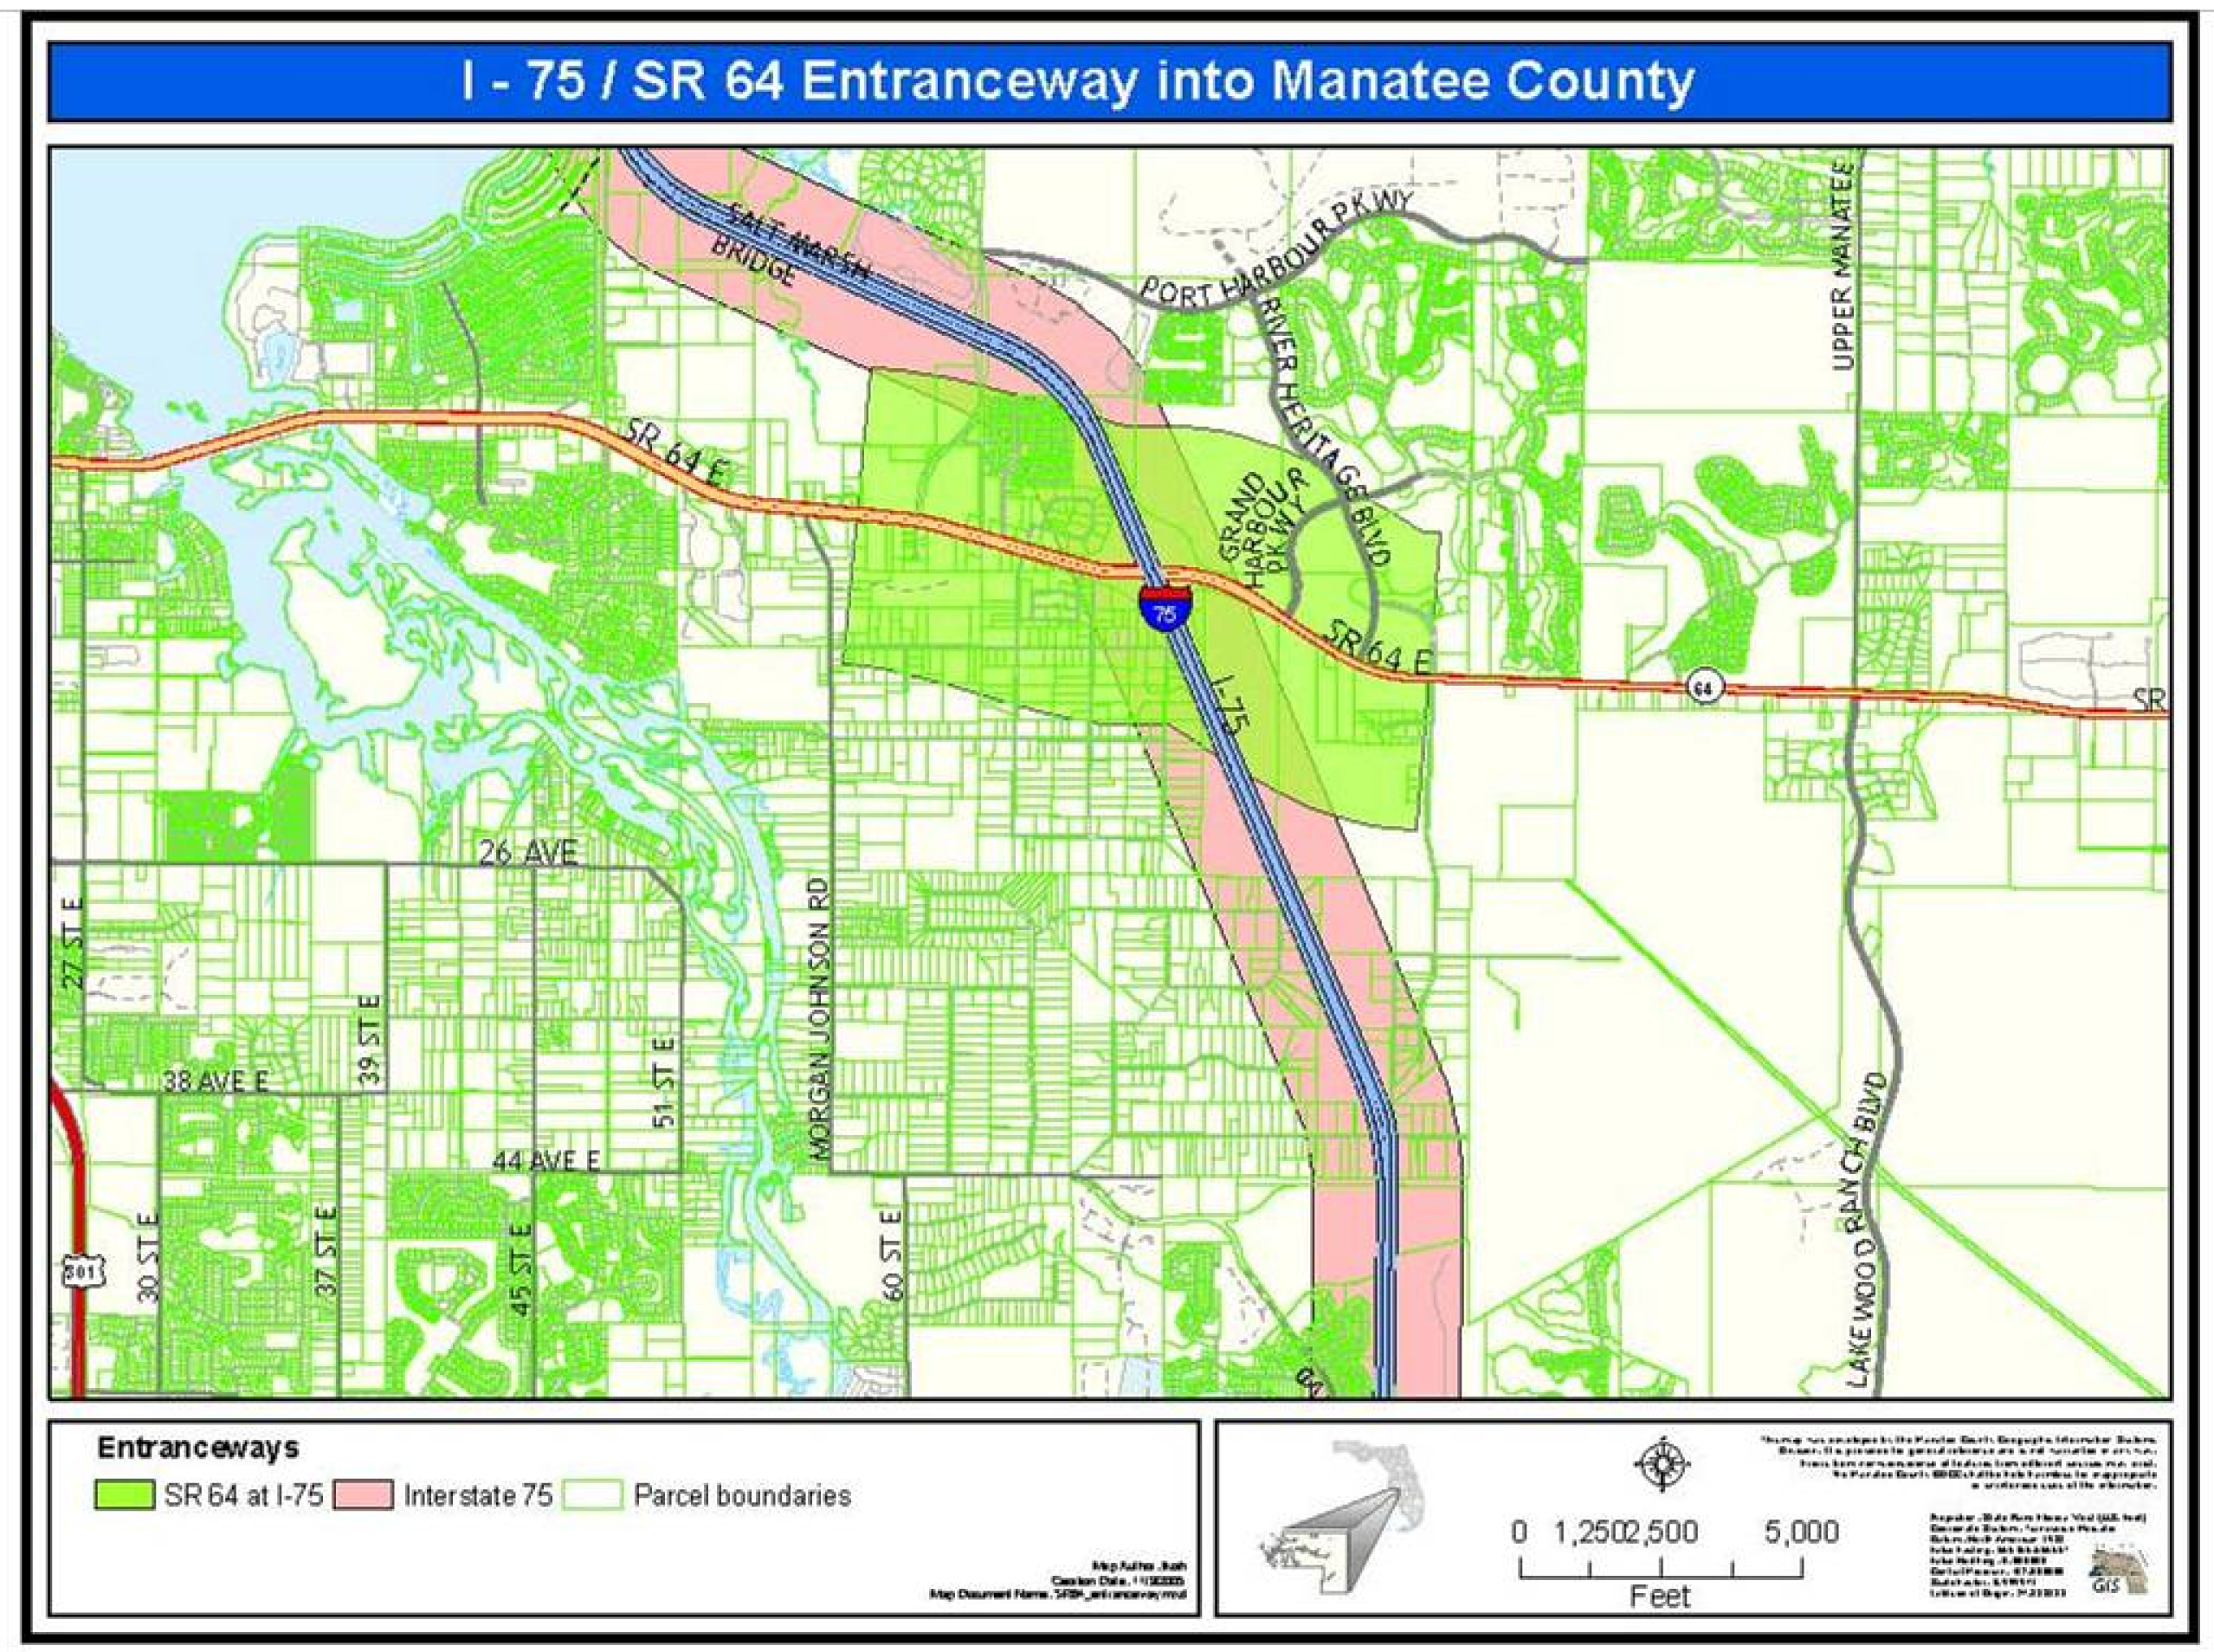 lake manatee map, port manatee map, hillsborough county map, longboat key county map, otter county map, florida map, naples map, west volusia county map, manatee river map, seminole county map, charlotte county map, manatee zoning map, polk county map, st. augustine map, sarasota map, tampa county map, manatee springs state park map, broward county map, st. johns county map, pinellas county map, on manatee county map